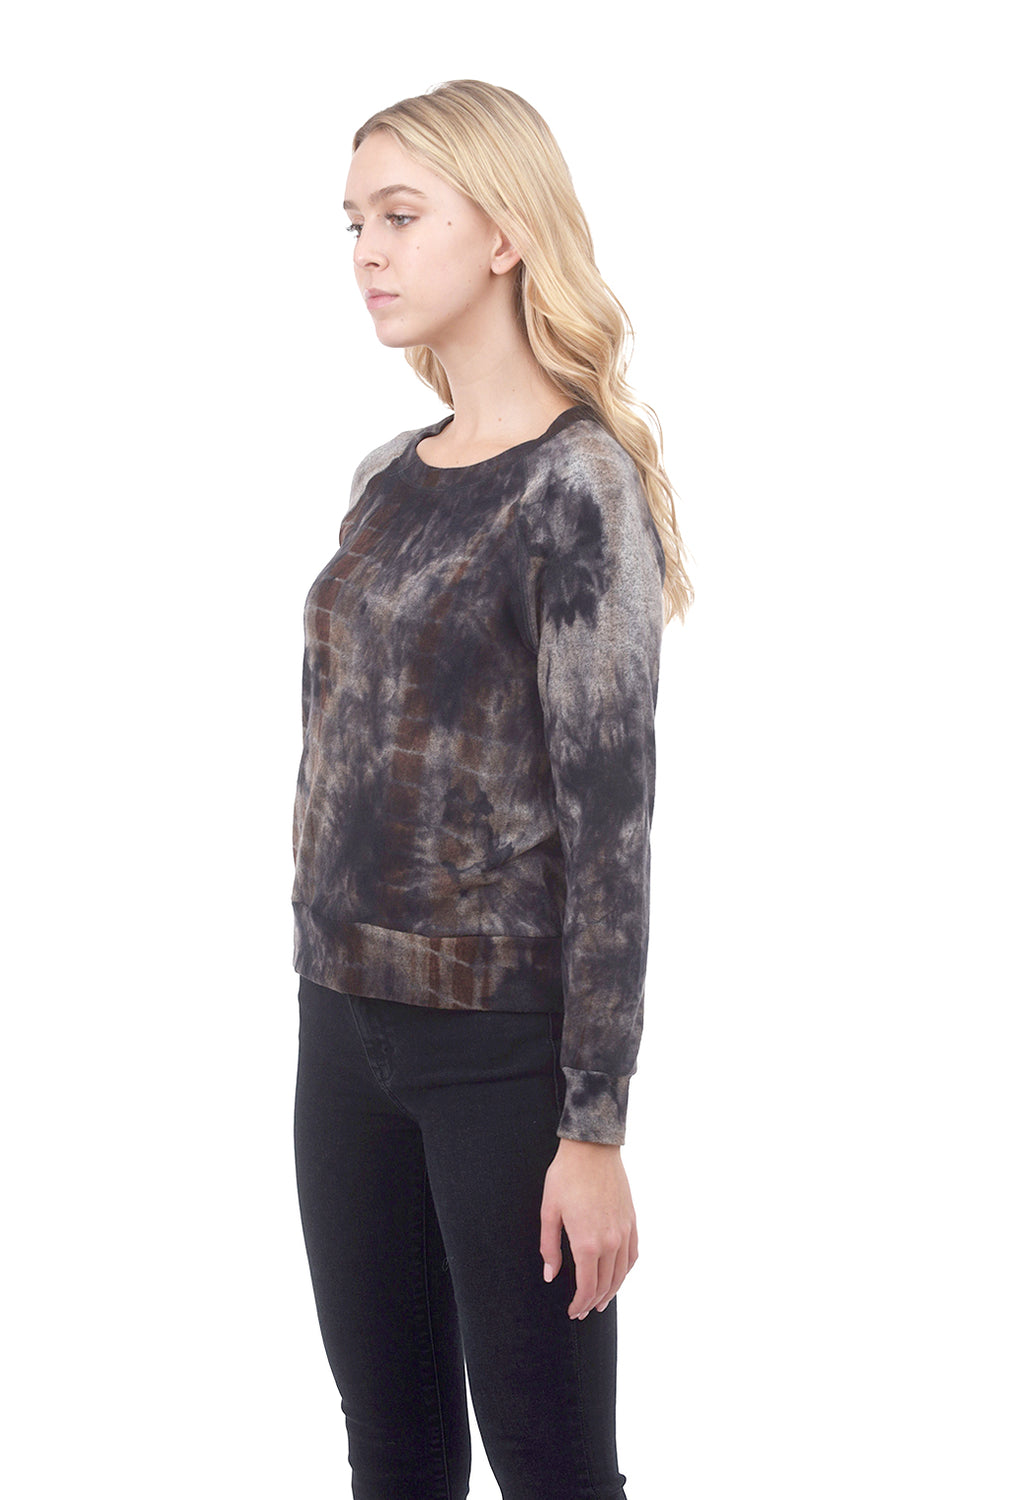 Coin1804 Cozy Tie-Dye Sweatshirt, Navy/Brown